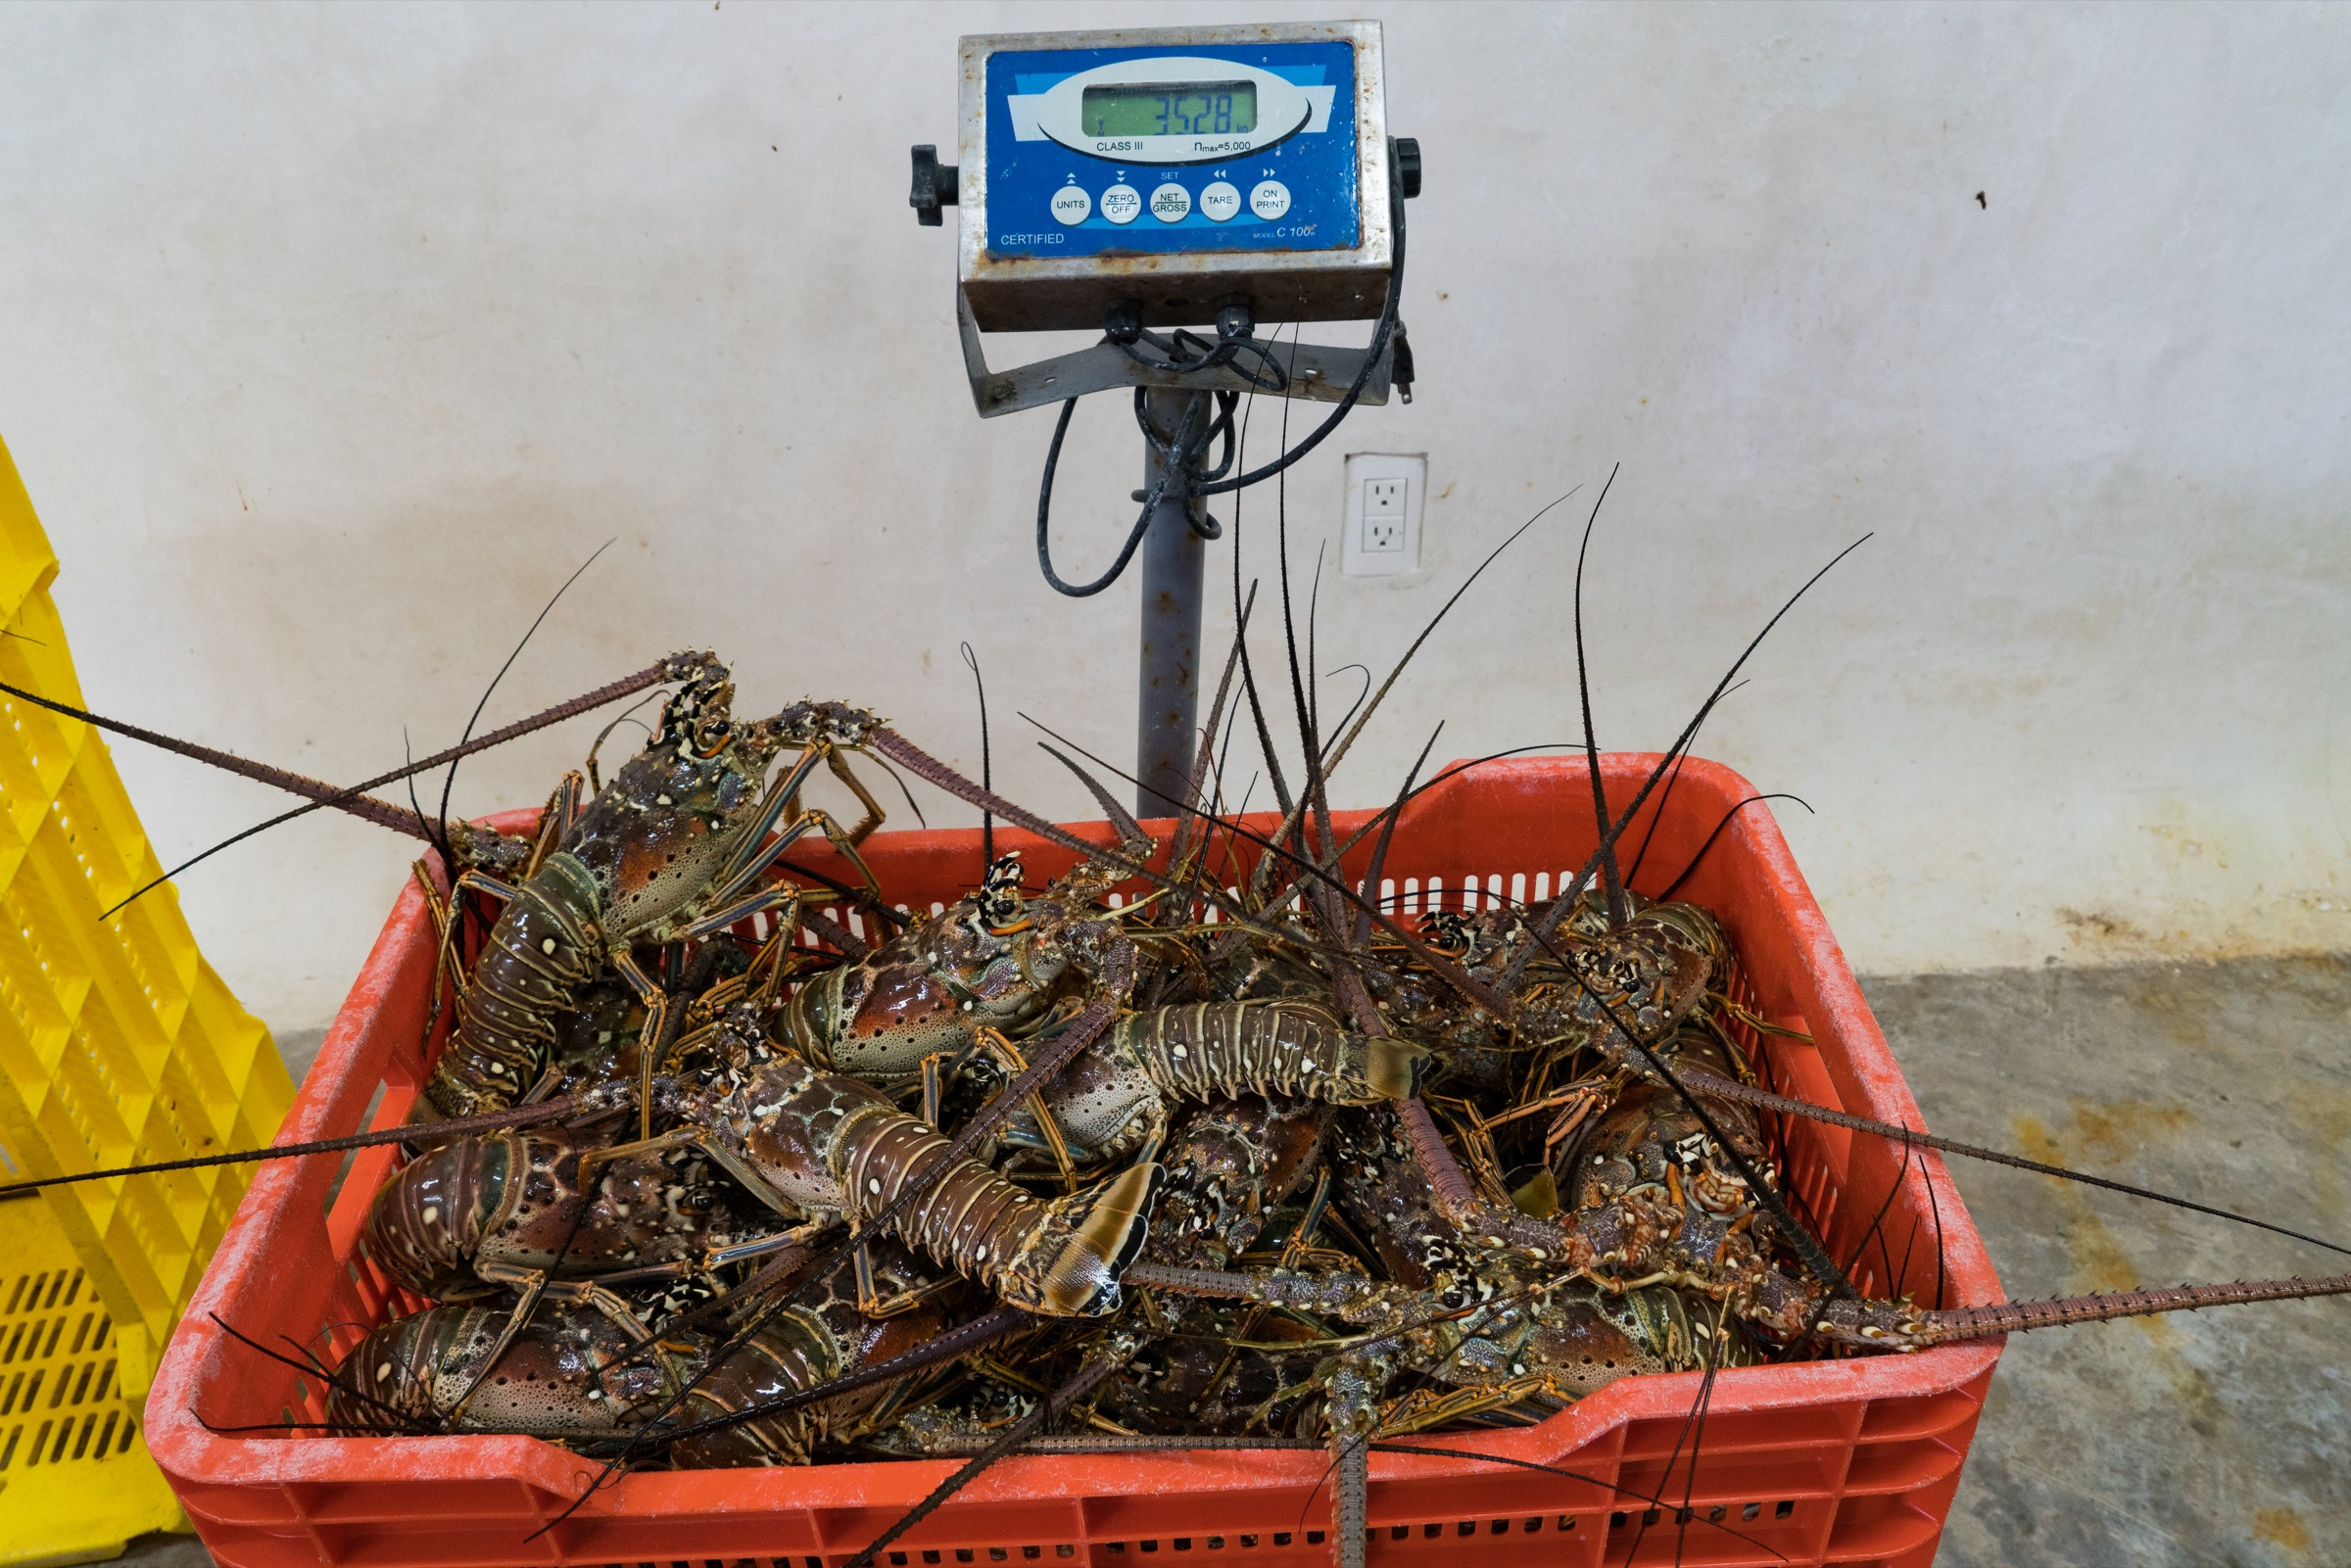 Punta Allen lobster fishermen can take home more than 100 kilograms of lobster in a day. Photograph by Steve De Neef